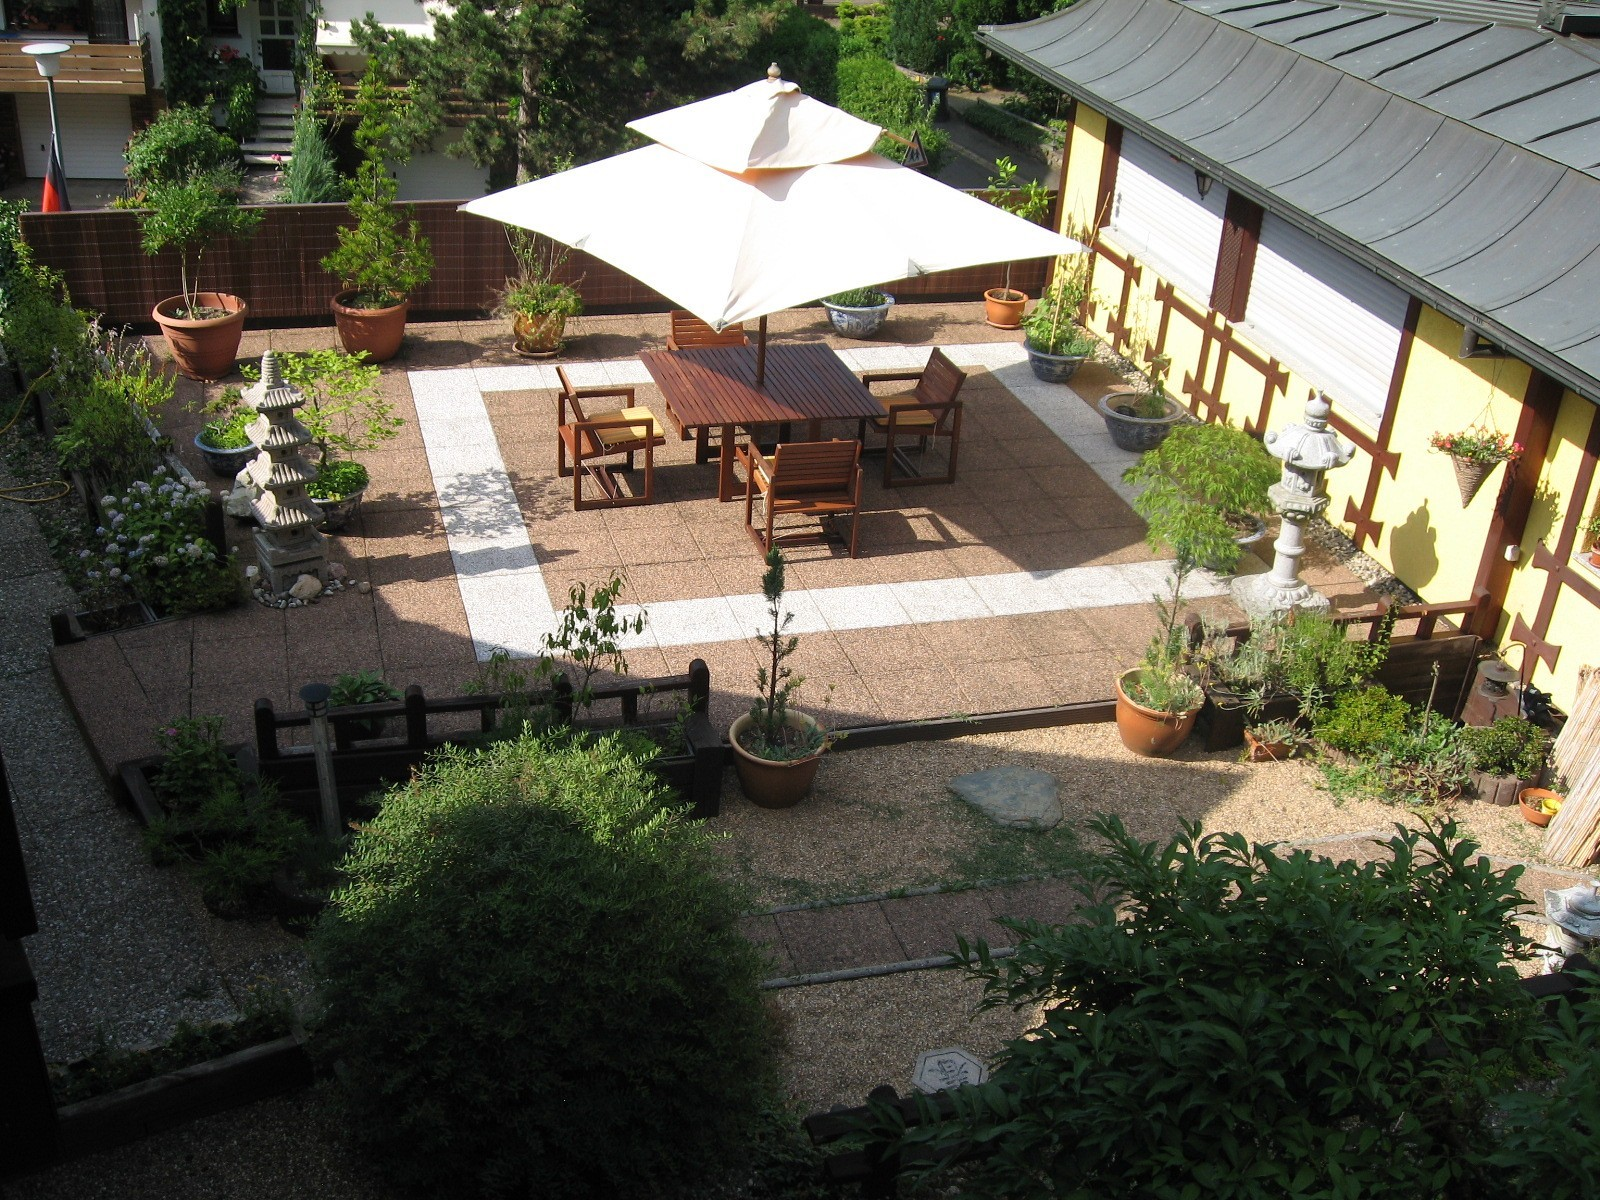 The Terrace And The Japanese Garden Invites You To Relax.